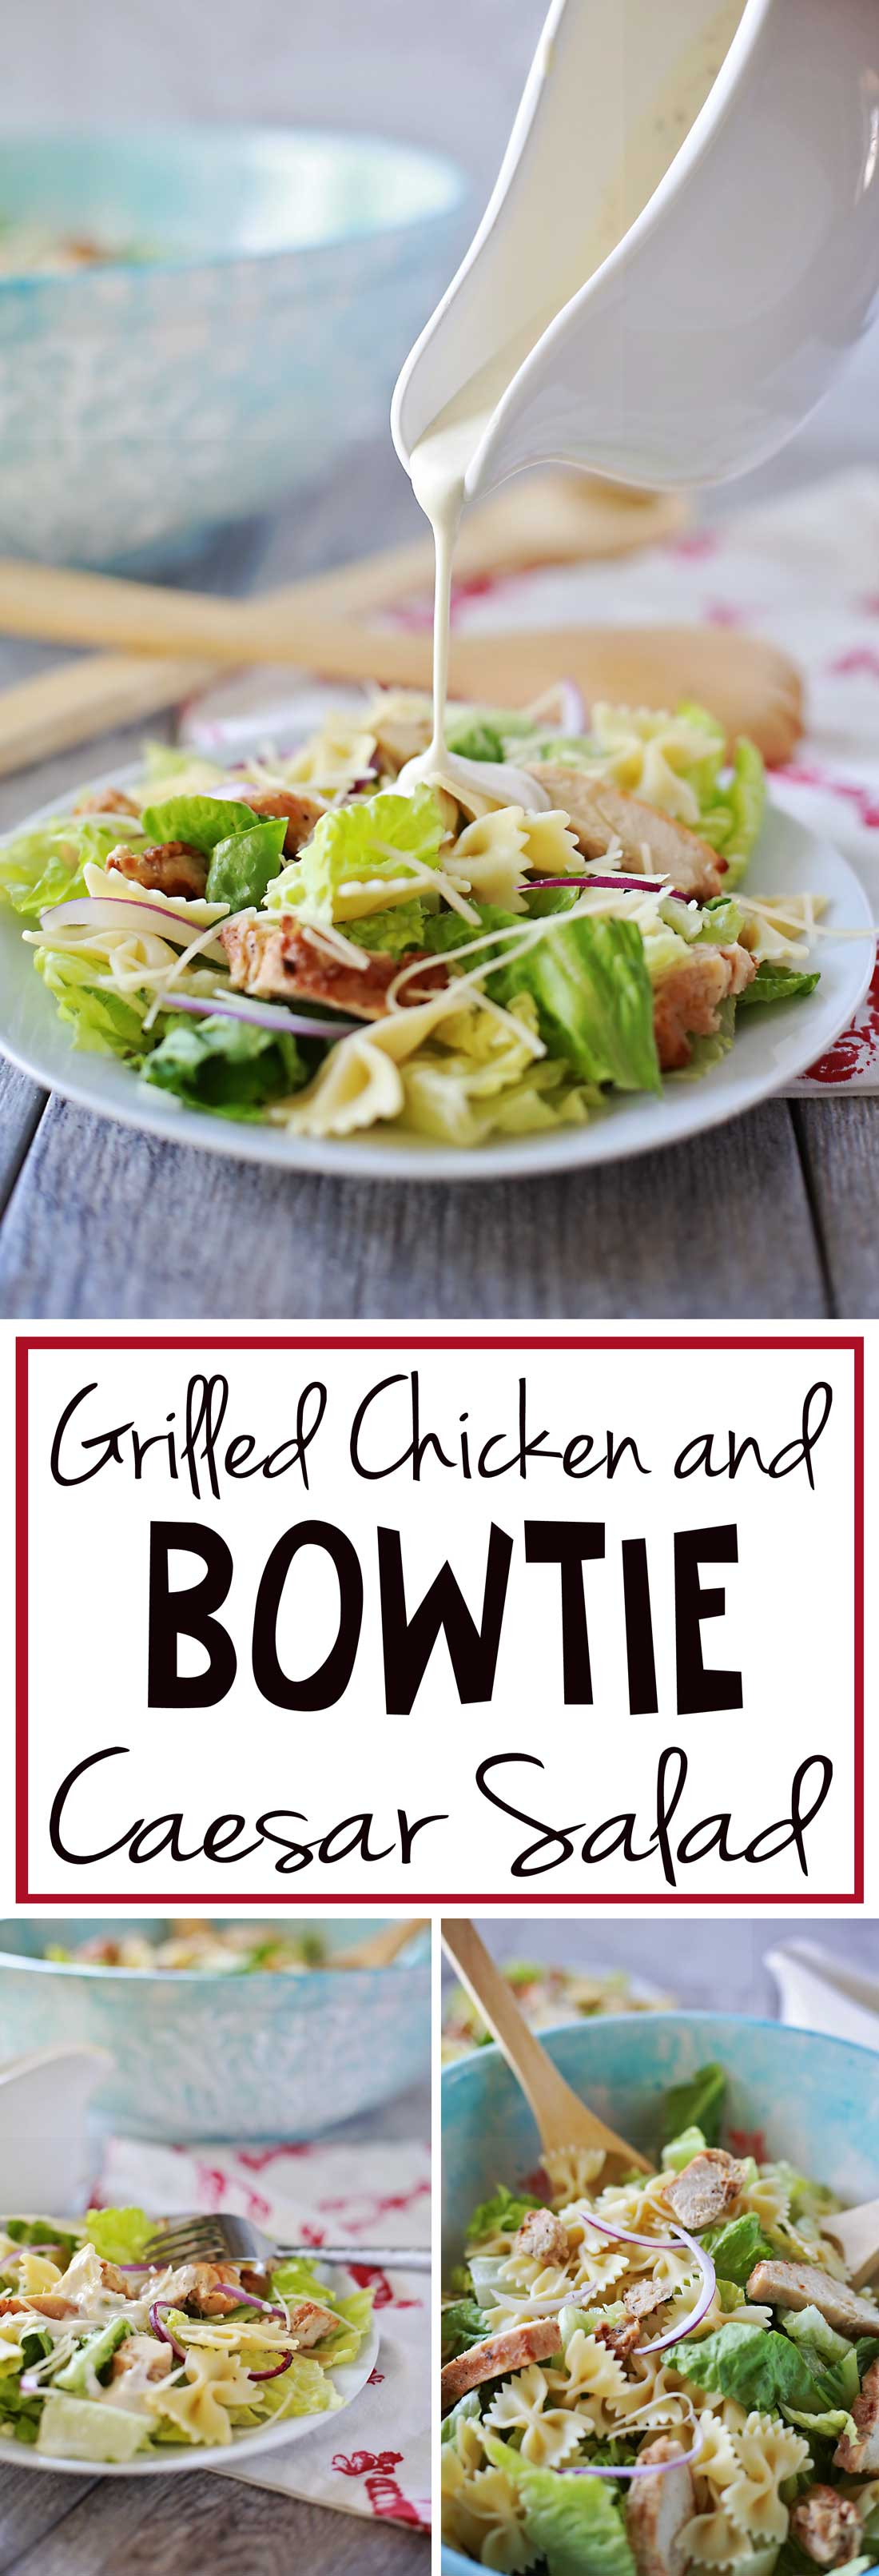 This bowtie chicken caesar salad was AMAZING! we served it at a party and everyone went crazy for it!!!